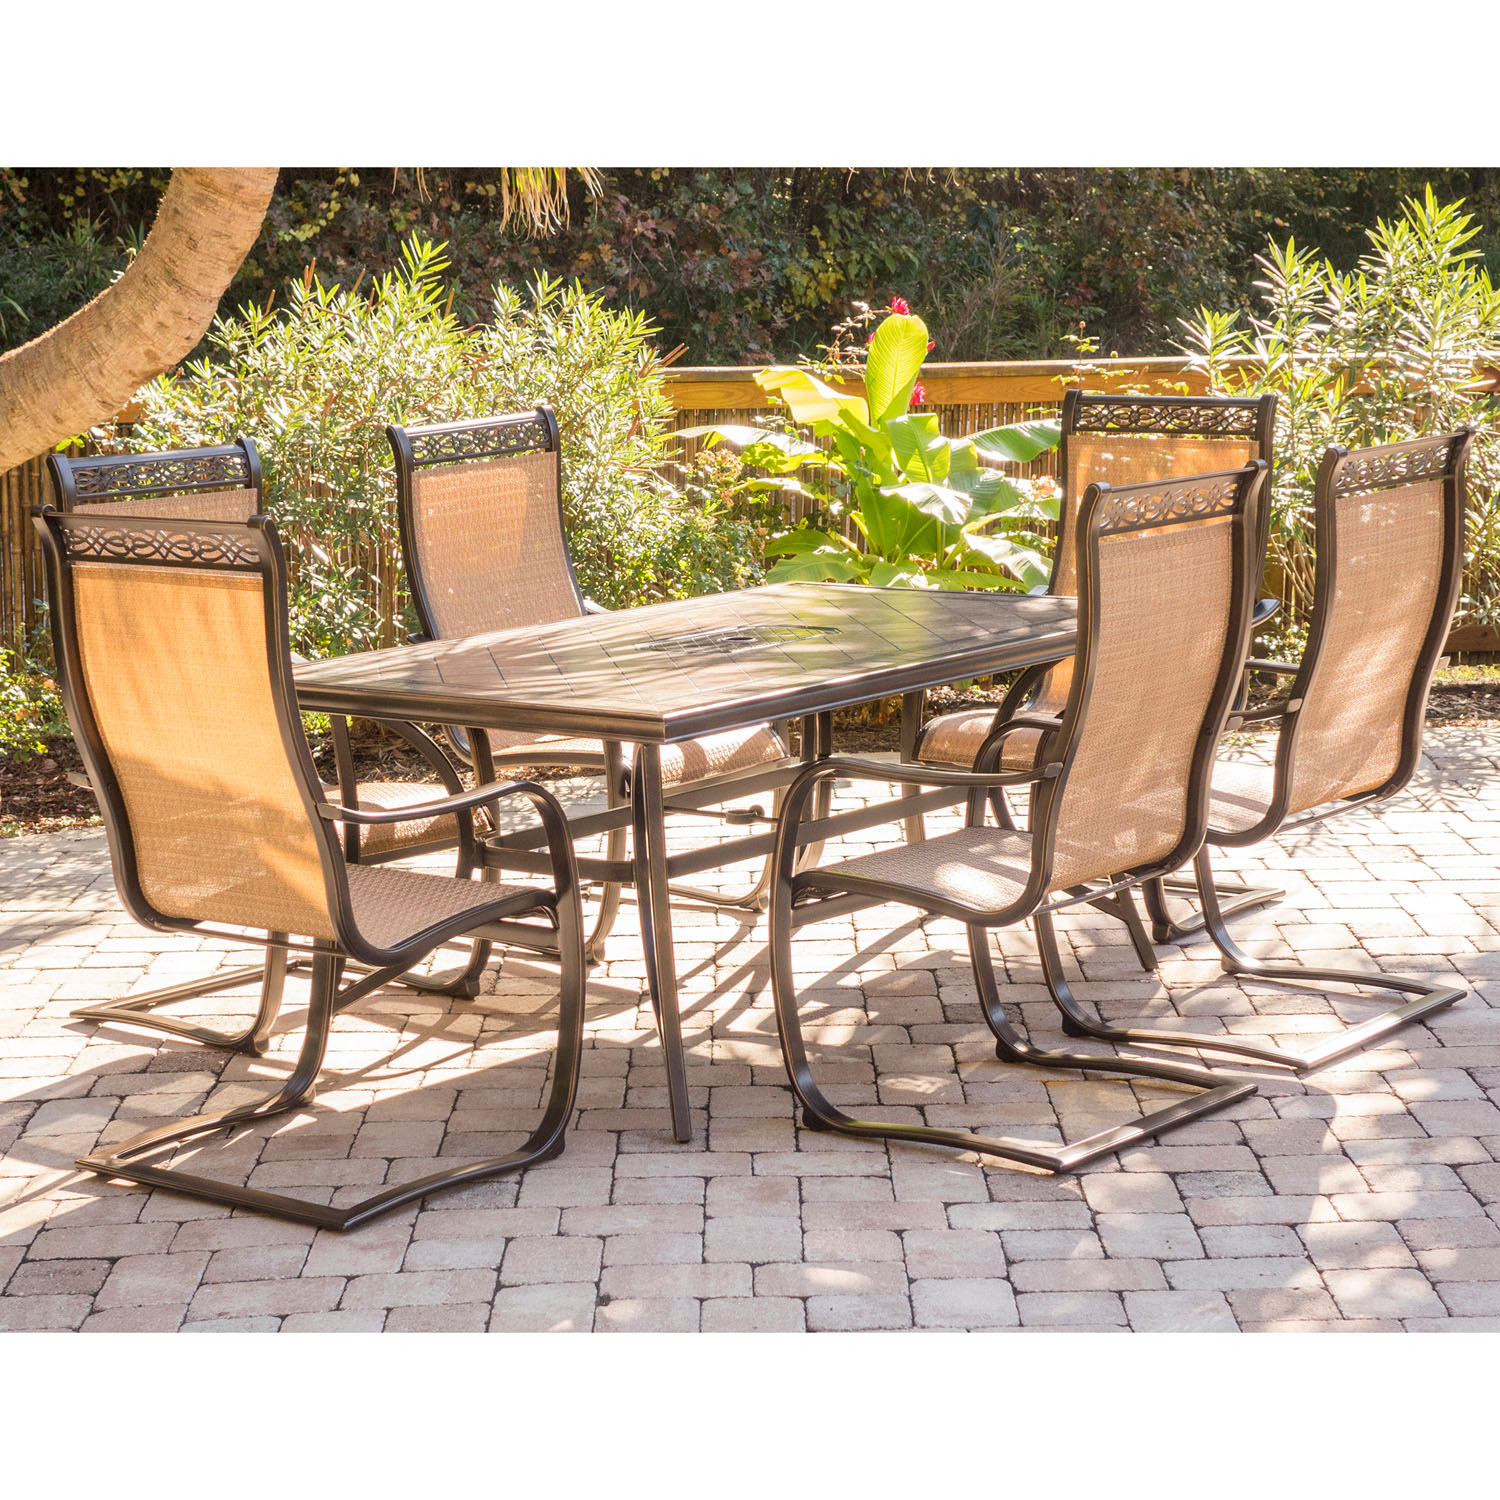 Beau Hanover Monaco 7 Piece Outdoor Dining Set With C Spring Chairs And Tile